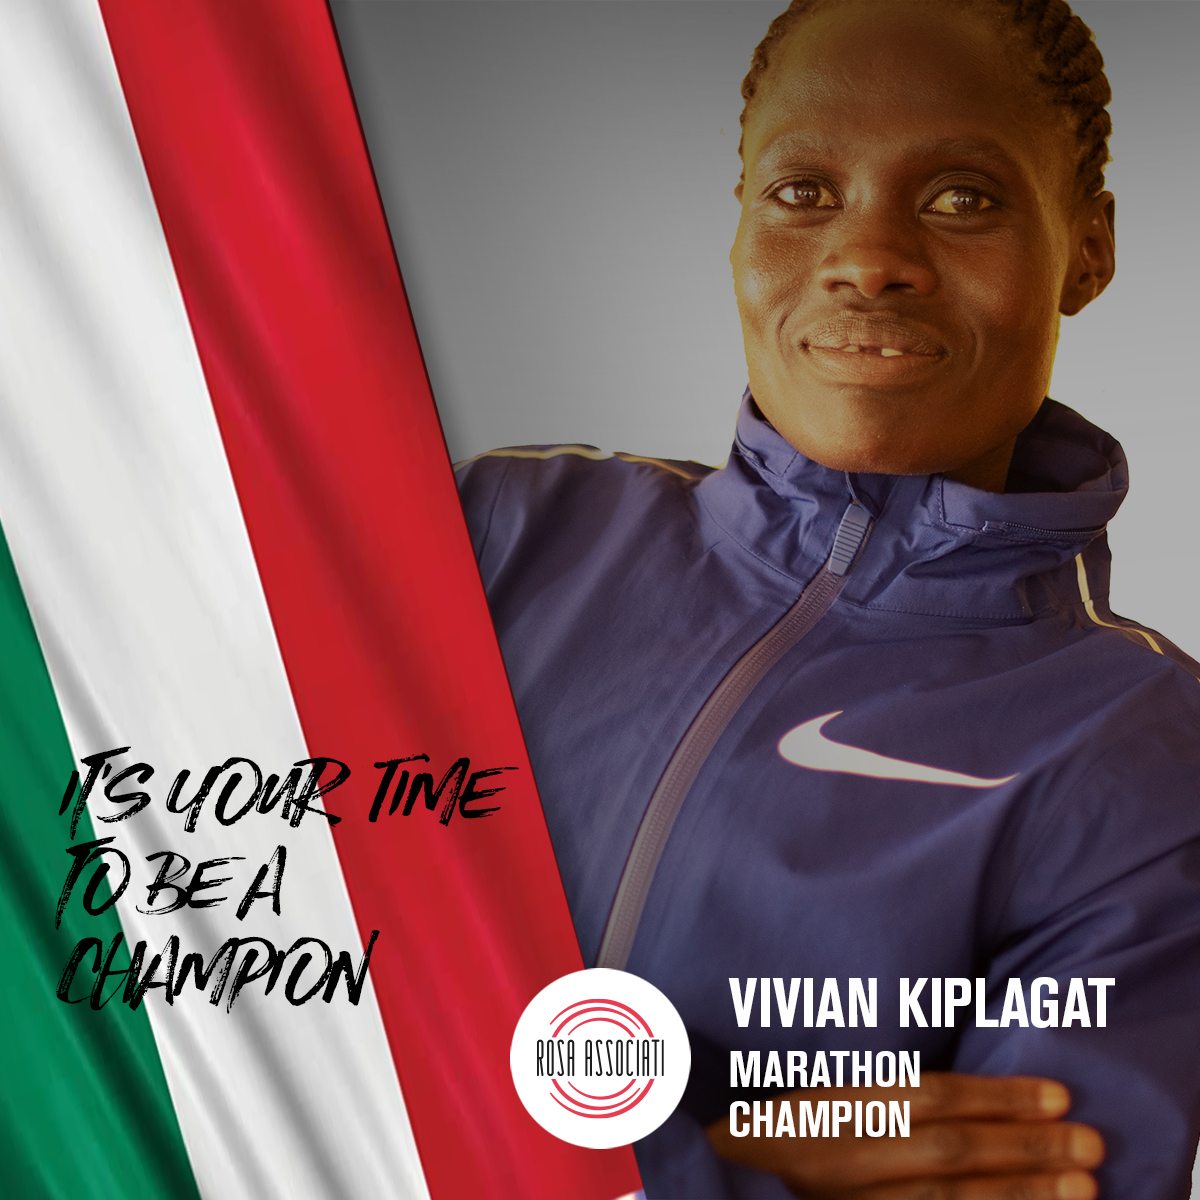 21 2020 - Campagna social We can win this race together-Vivian Kiplagat